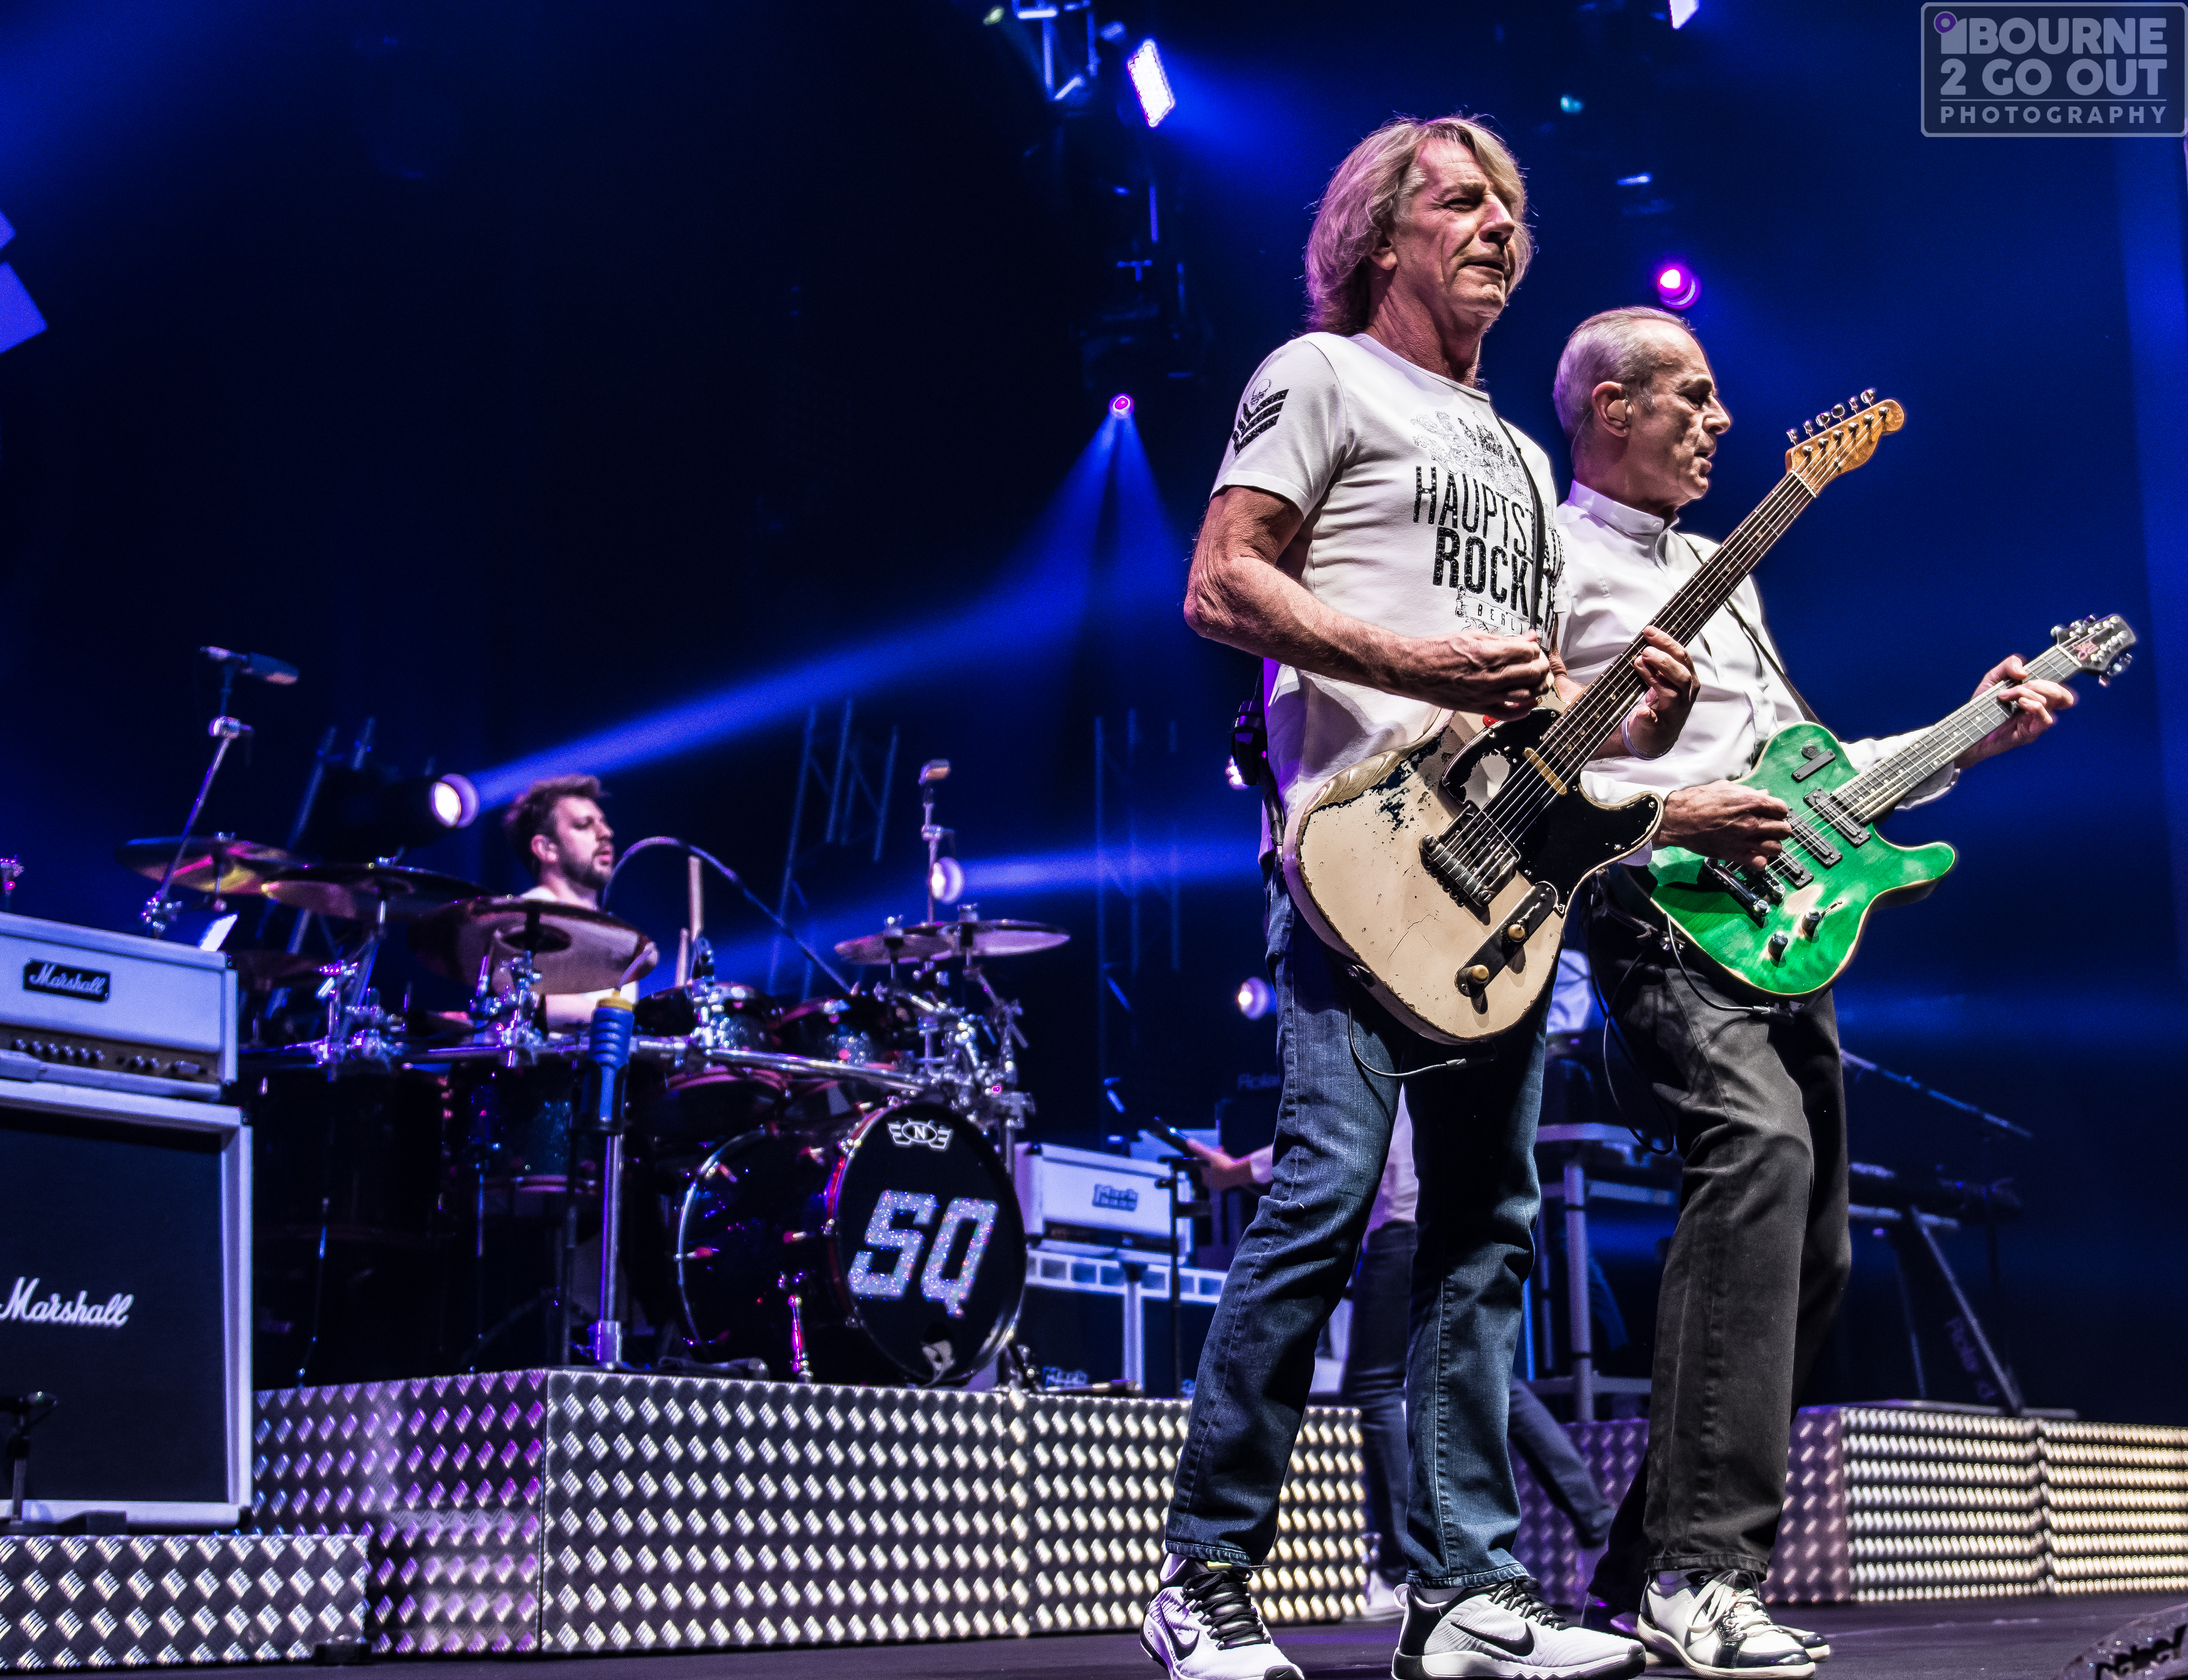 Status Quo (The BIC, Bournemouth – 10/12/15)